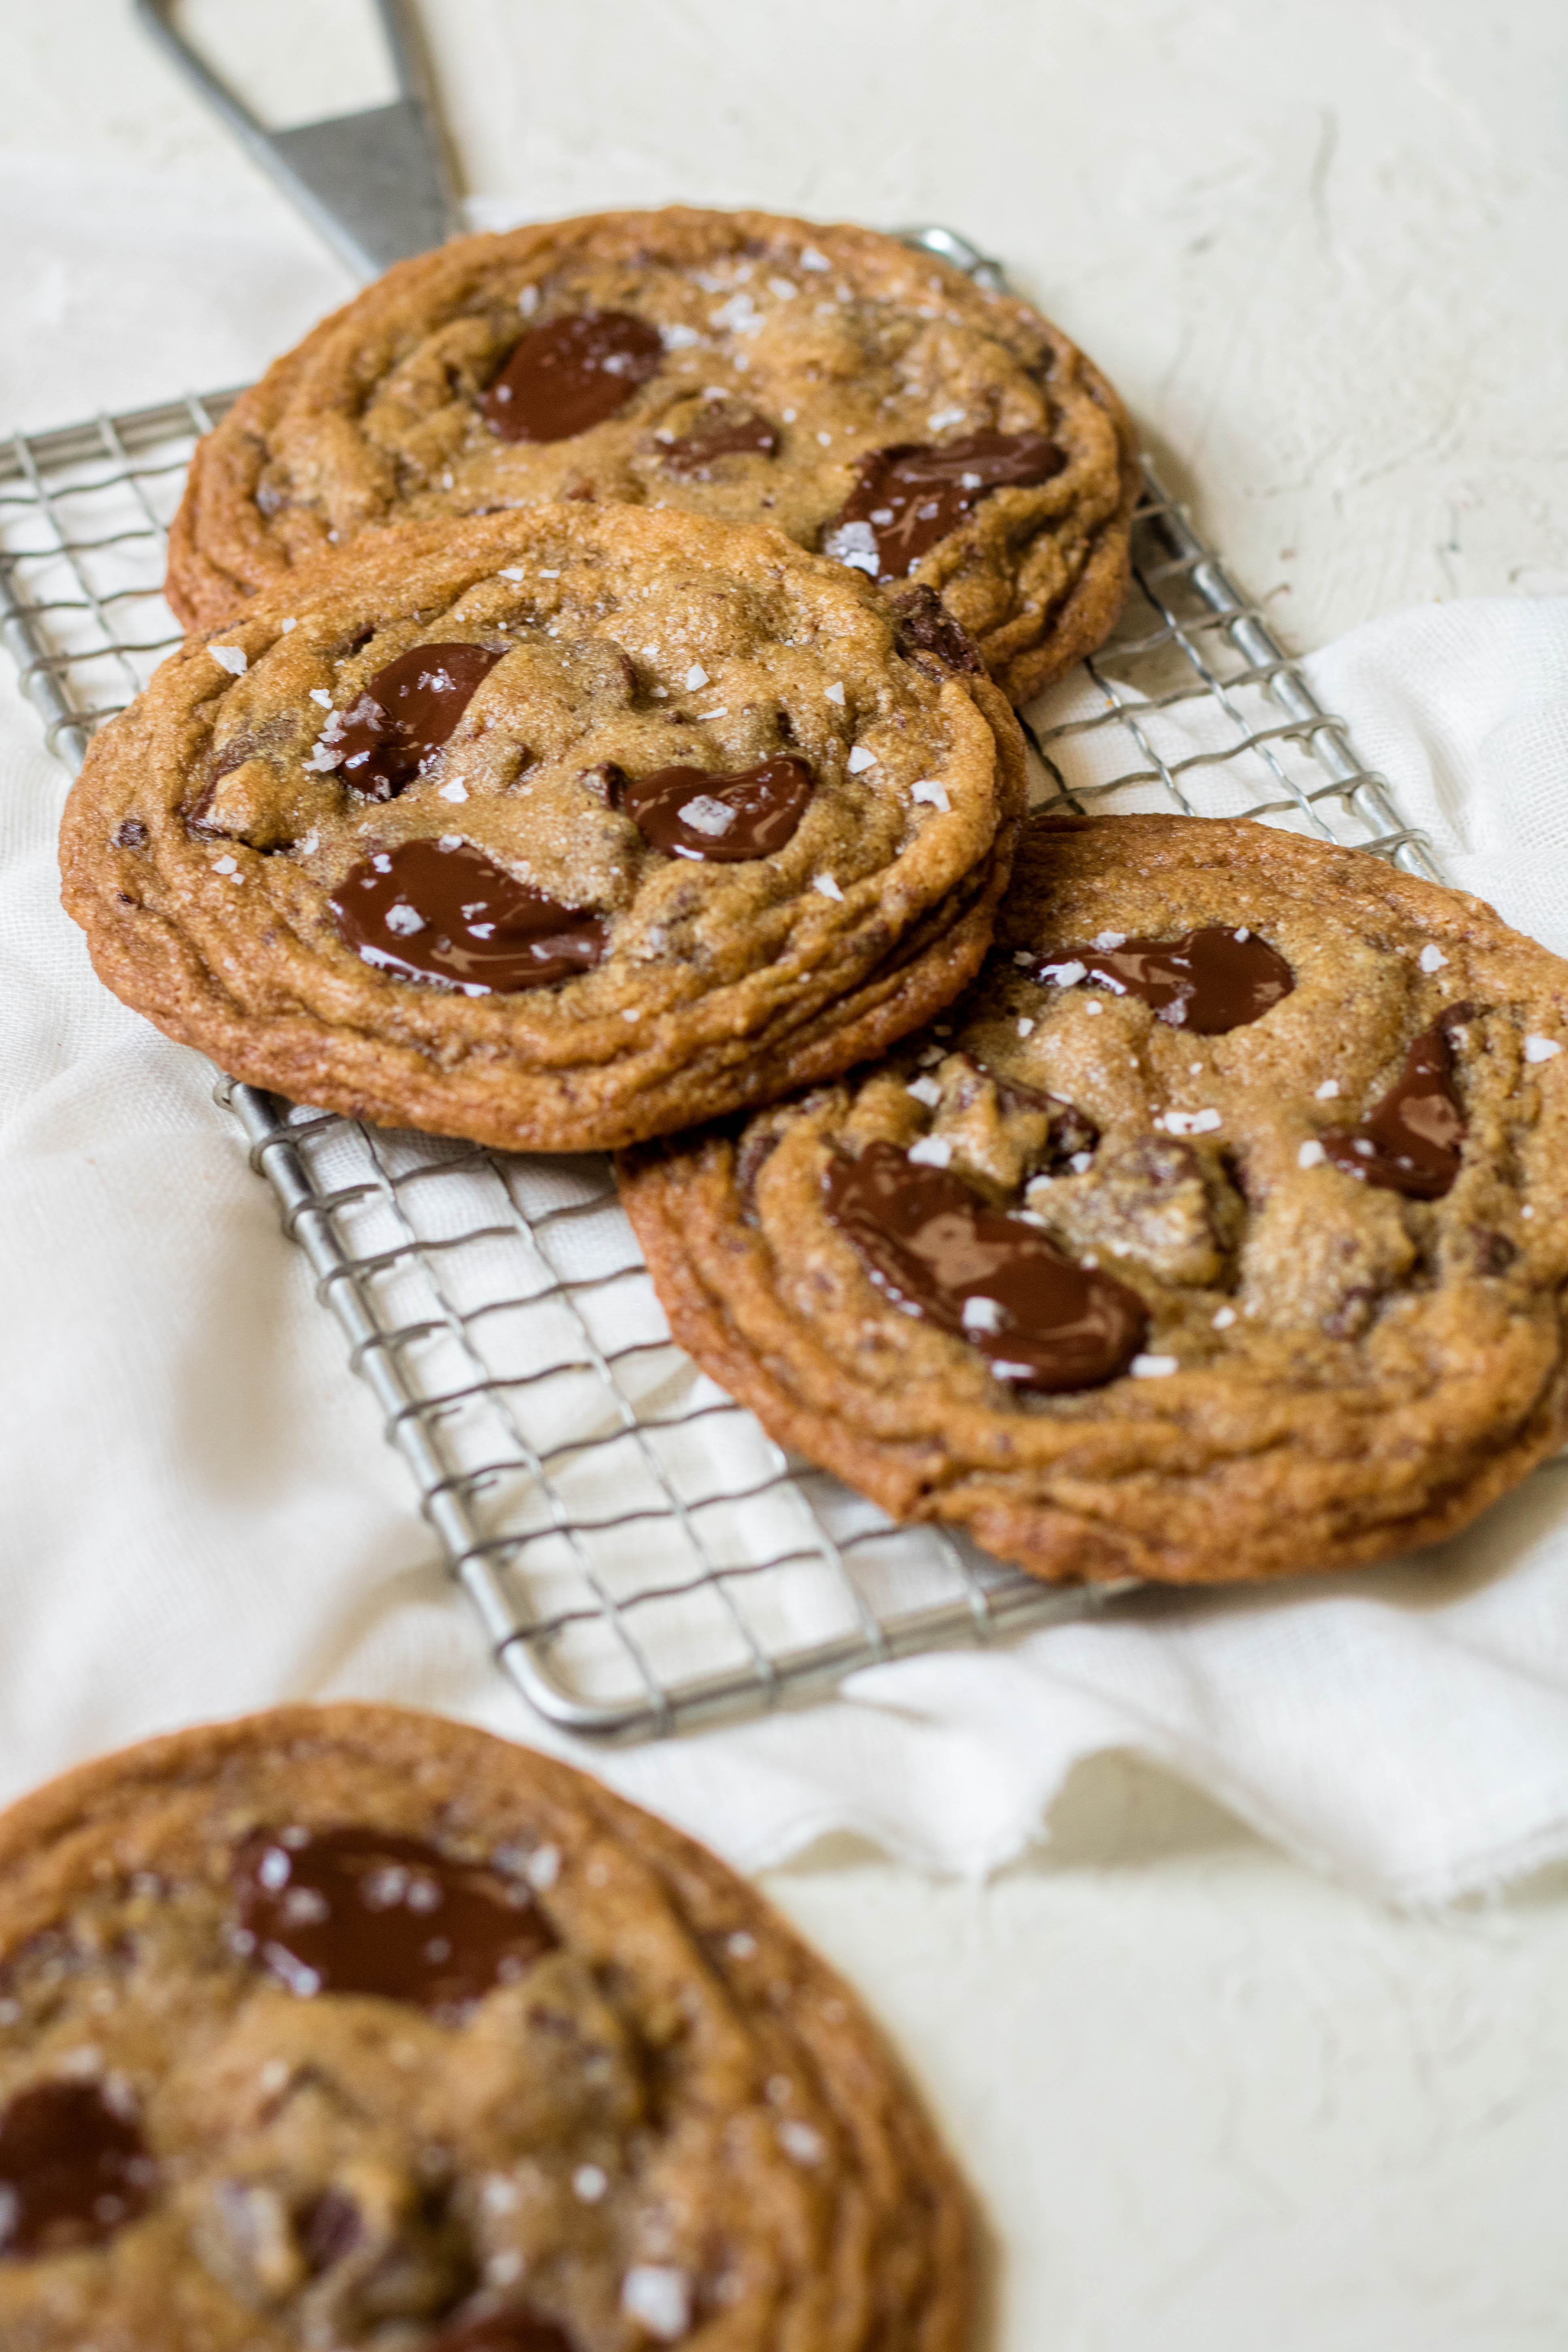 Homemade chocolate chip cookies with sea salt flakes